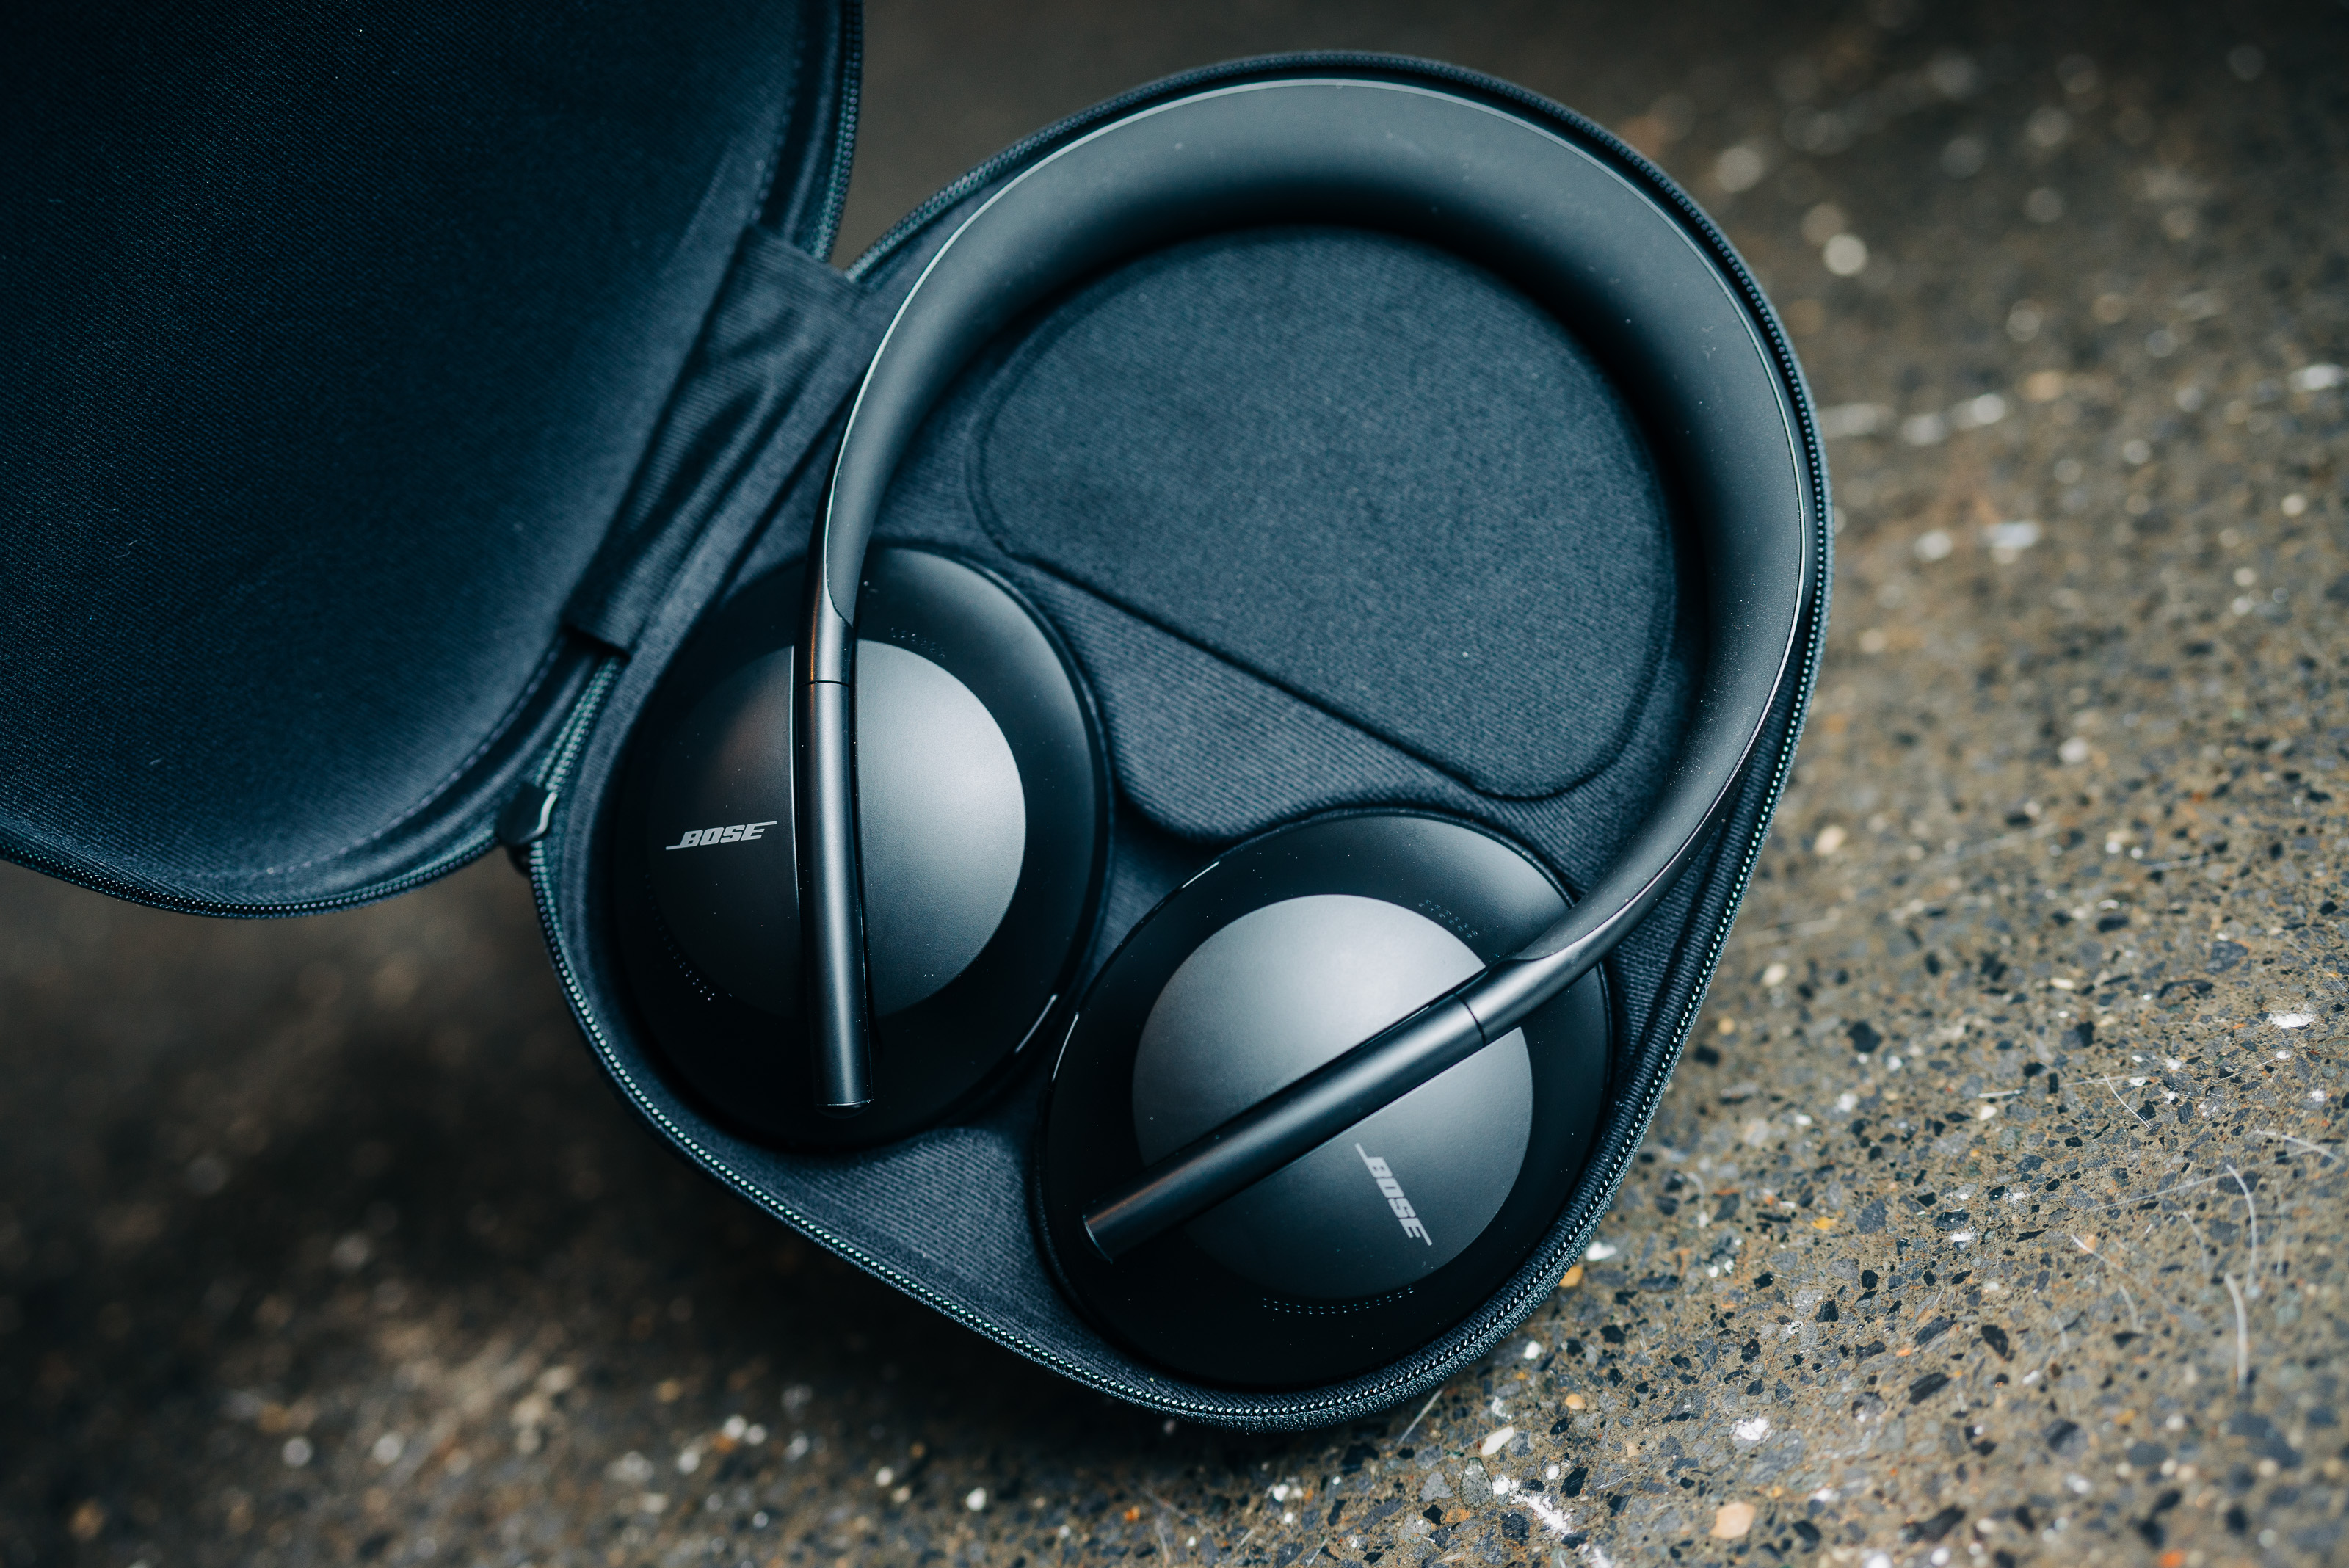 The Bose 700 headphones have the strongest noise-cancelling around